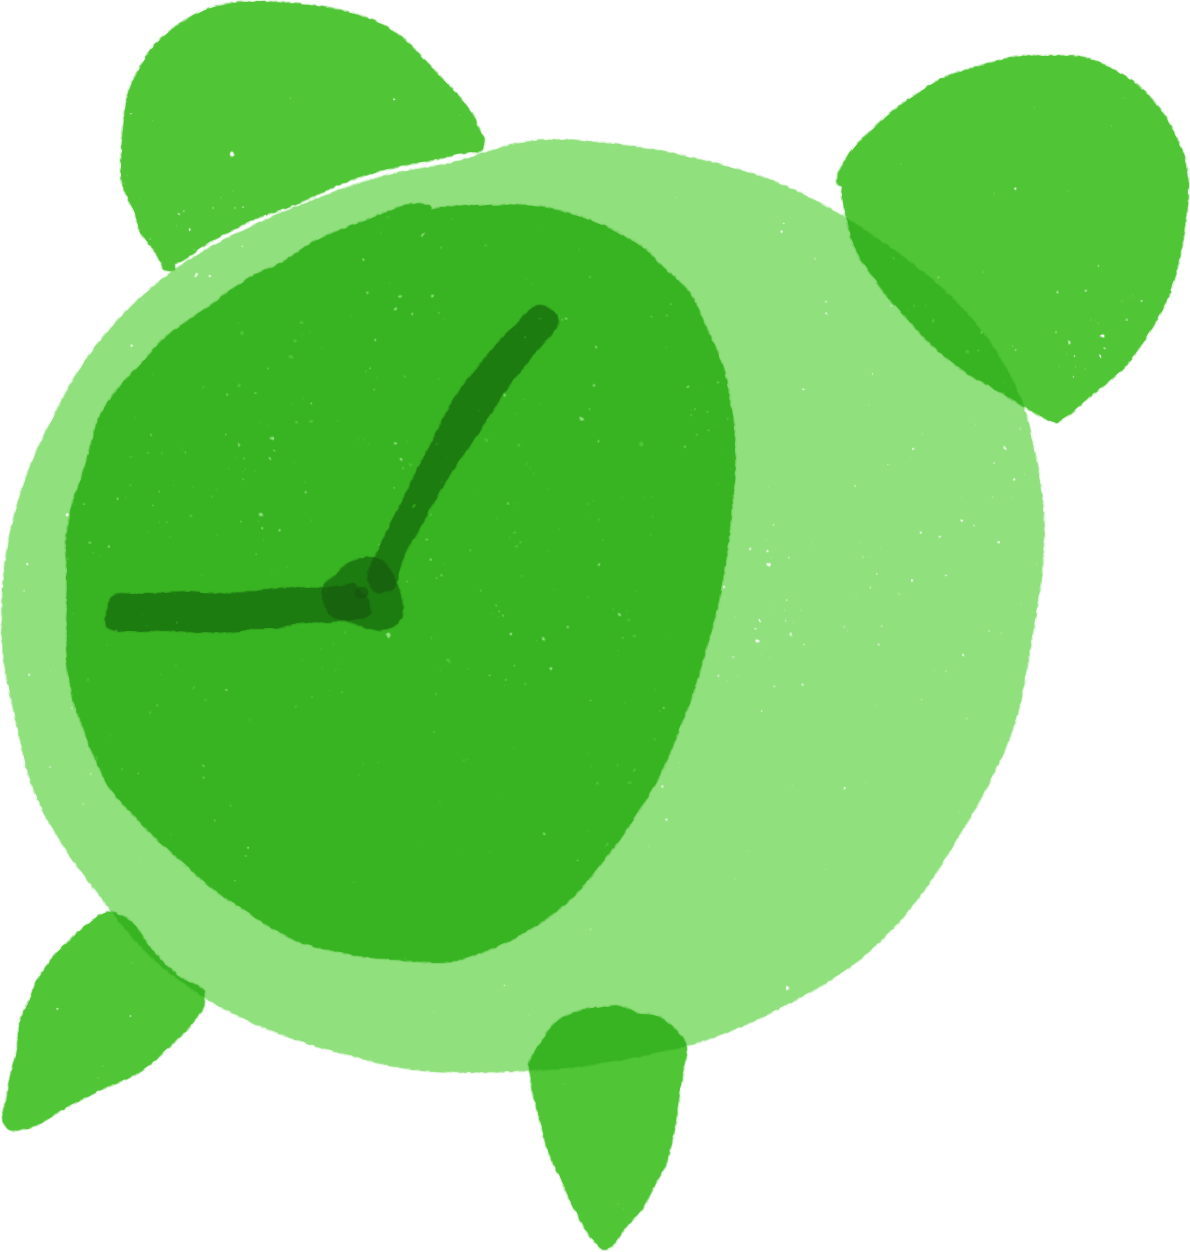 Alarm Clock illustration